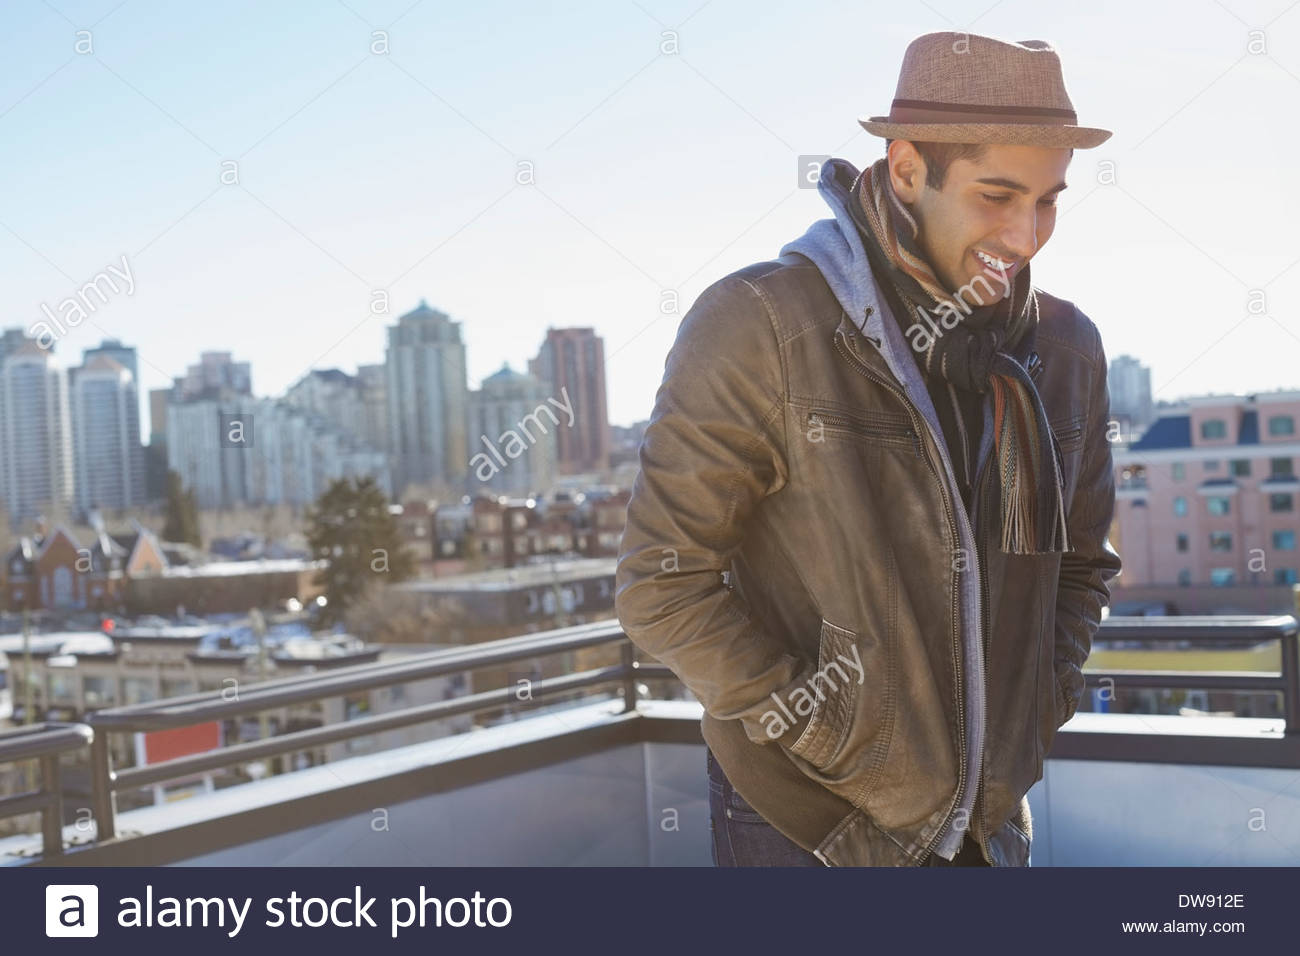 Man standing outdoors against cityscape - Stock Image